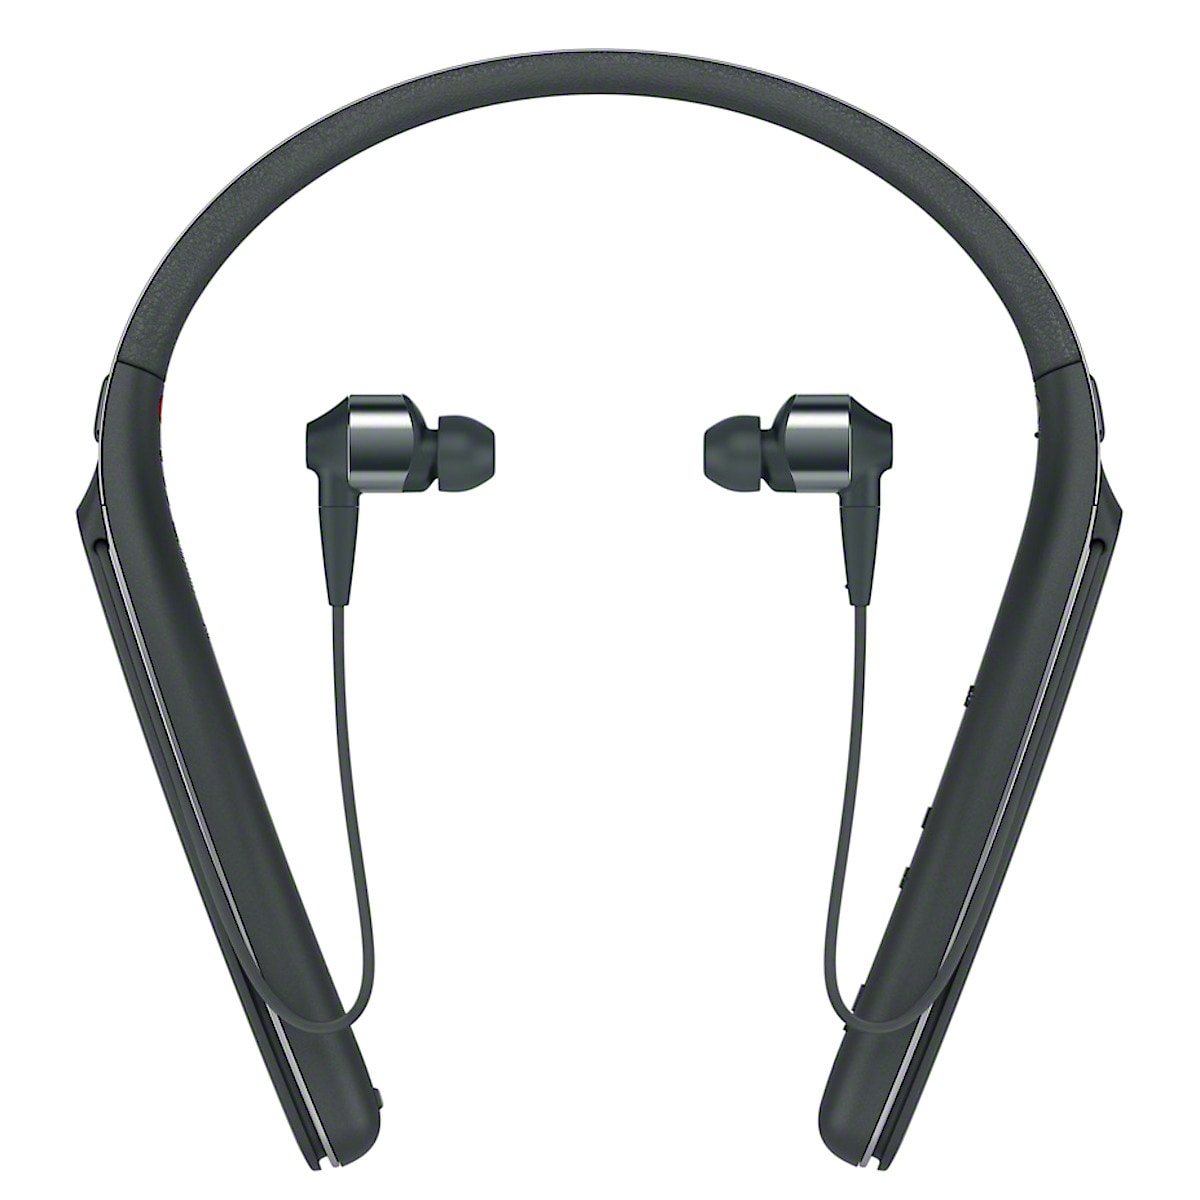 Sony WI-1000X Wireless Headphones with Microphone